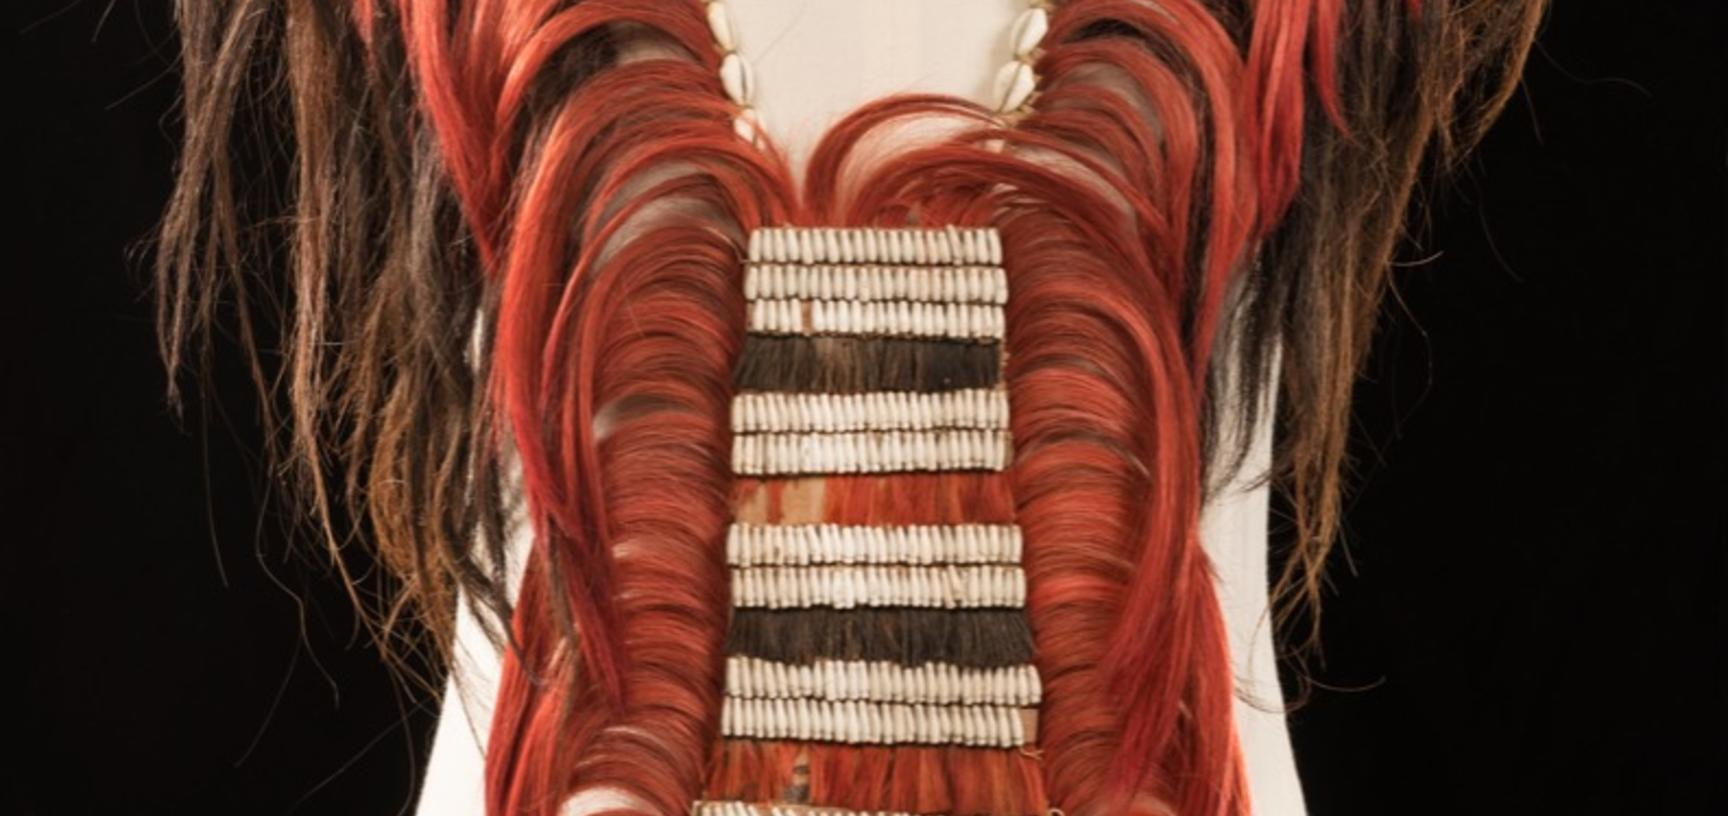 Angami Naga neck and breast ornament: 'Ornament for neck & breast of hair[,] cowries & coix seeds: a sign of conspicuous bravery' (handwritten caption on catalogue index card). Collected by Robert Gosset Woodthorpe; donated to the Pitt Rivers Museum by Ed